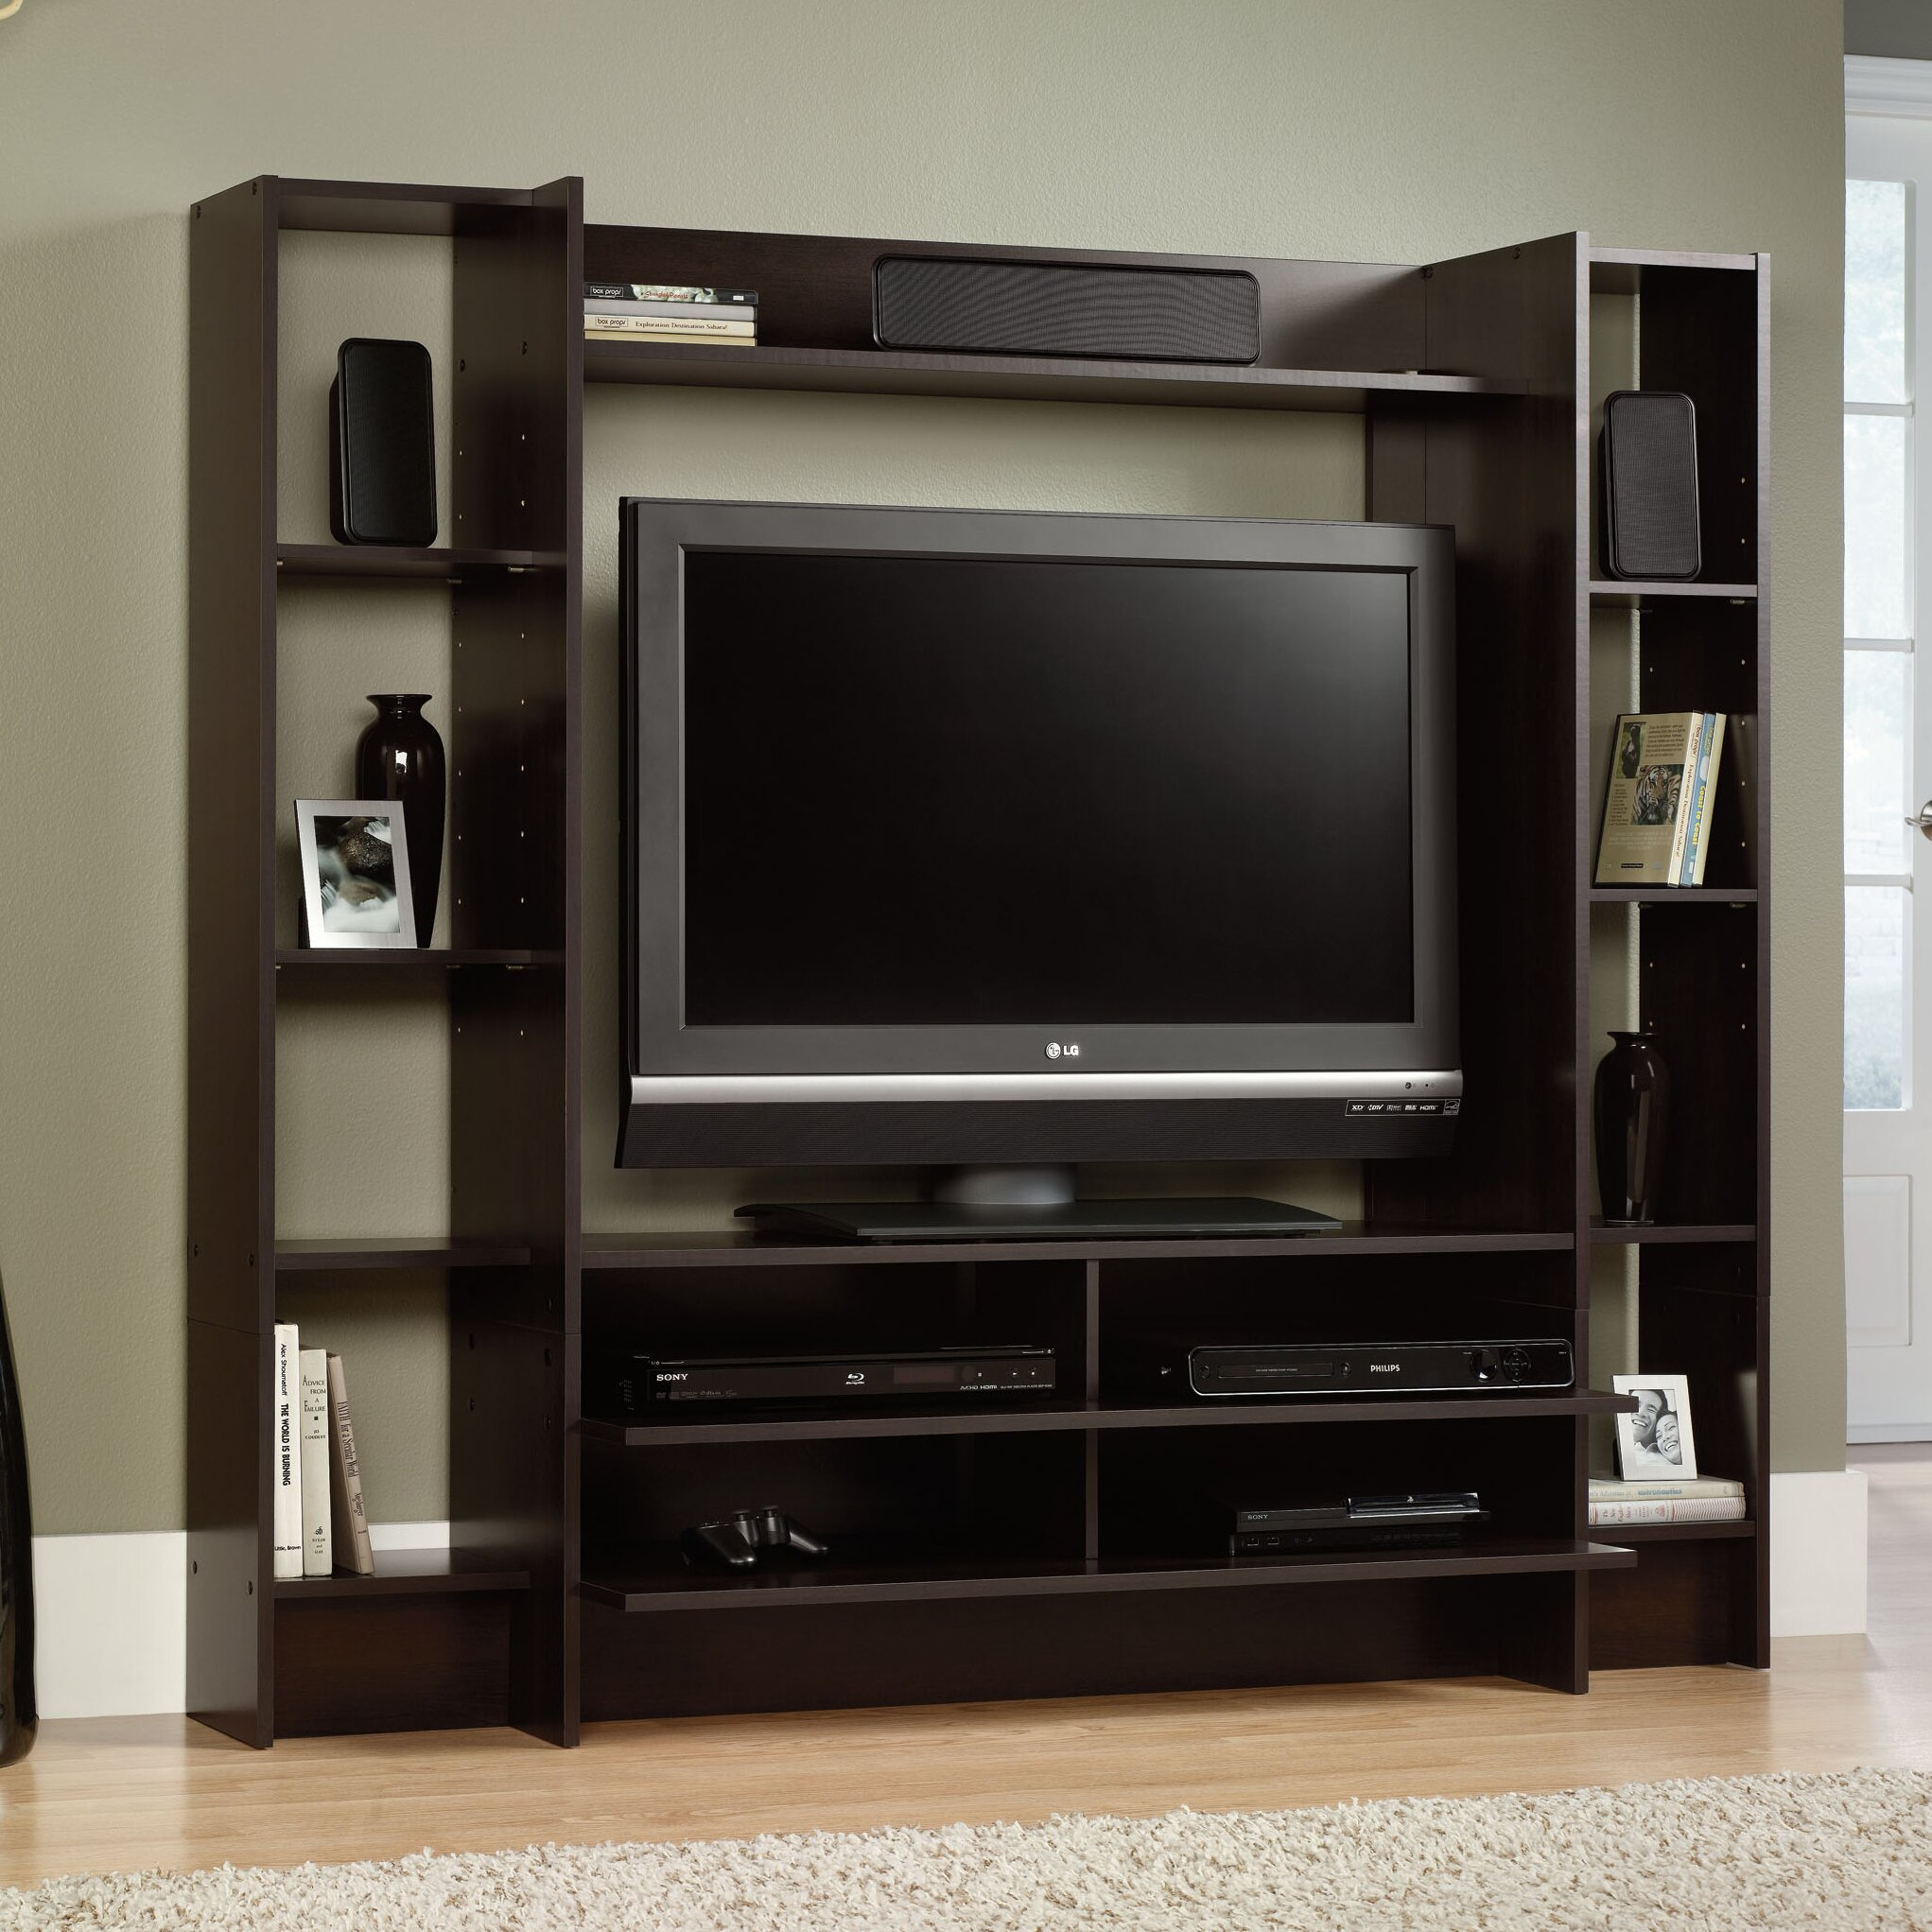 Zipcode design angelica entertainment center reviews wayfair - Angelica kitchen delivery ...